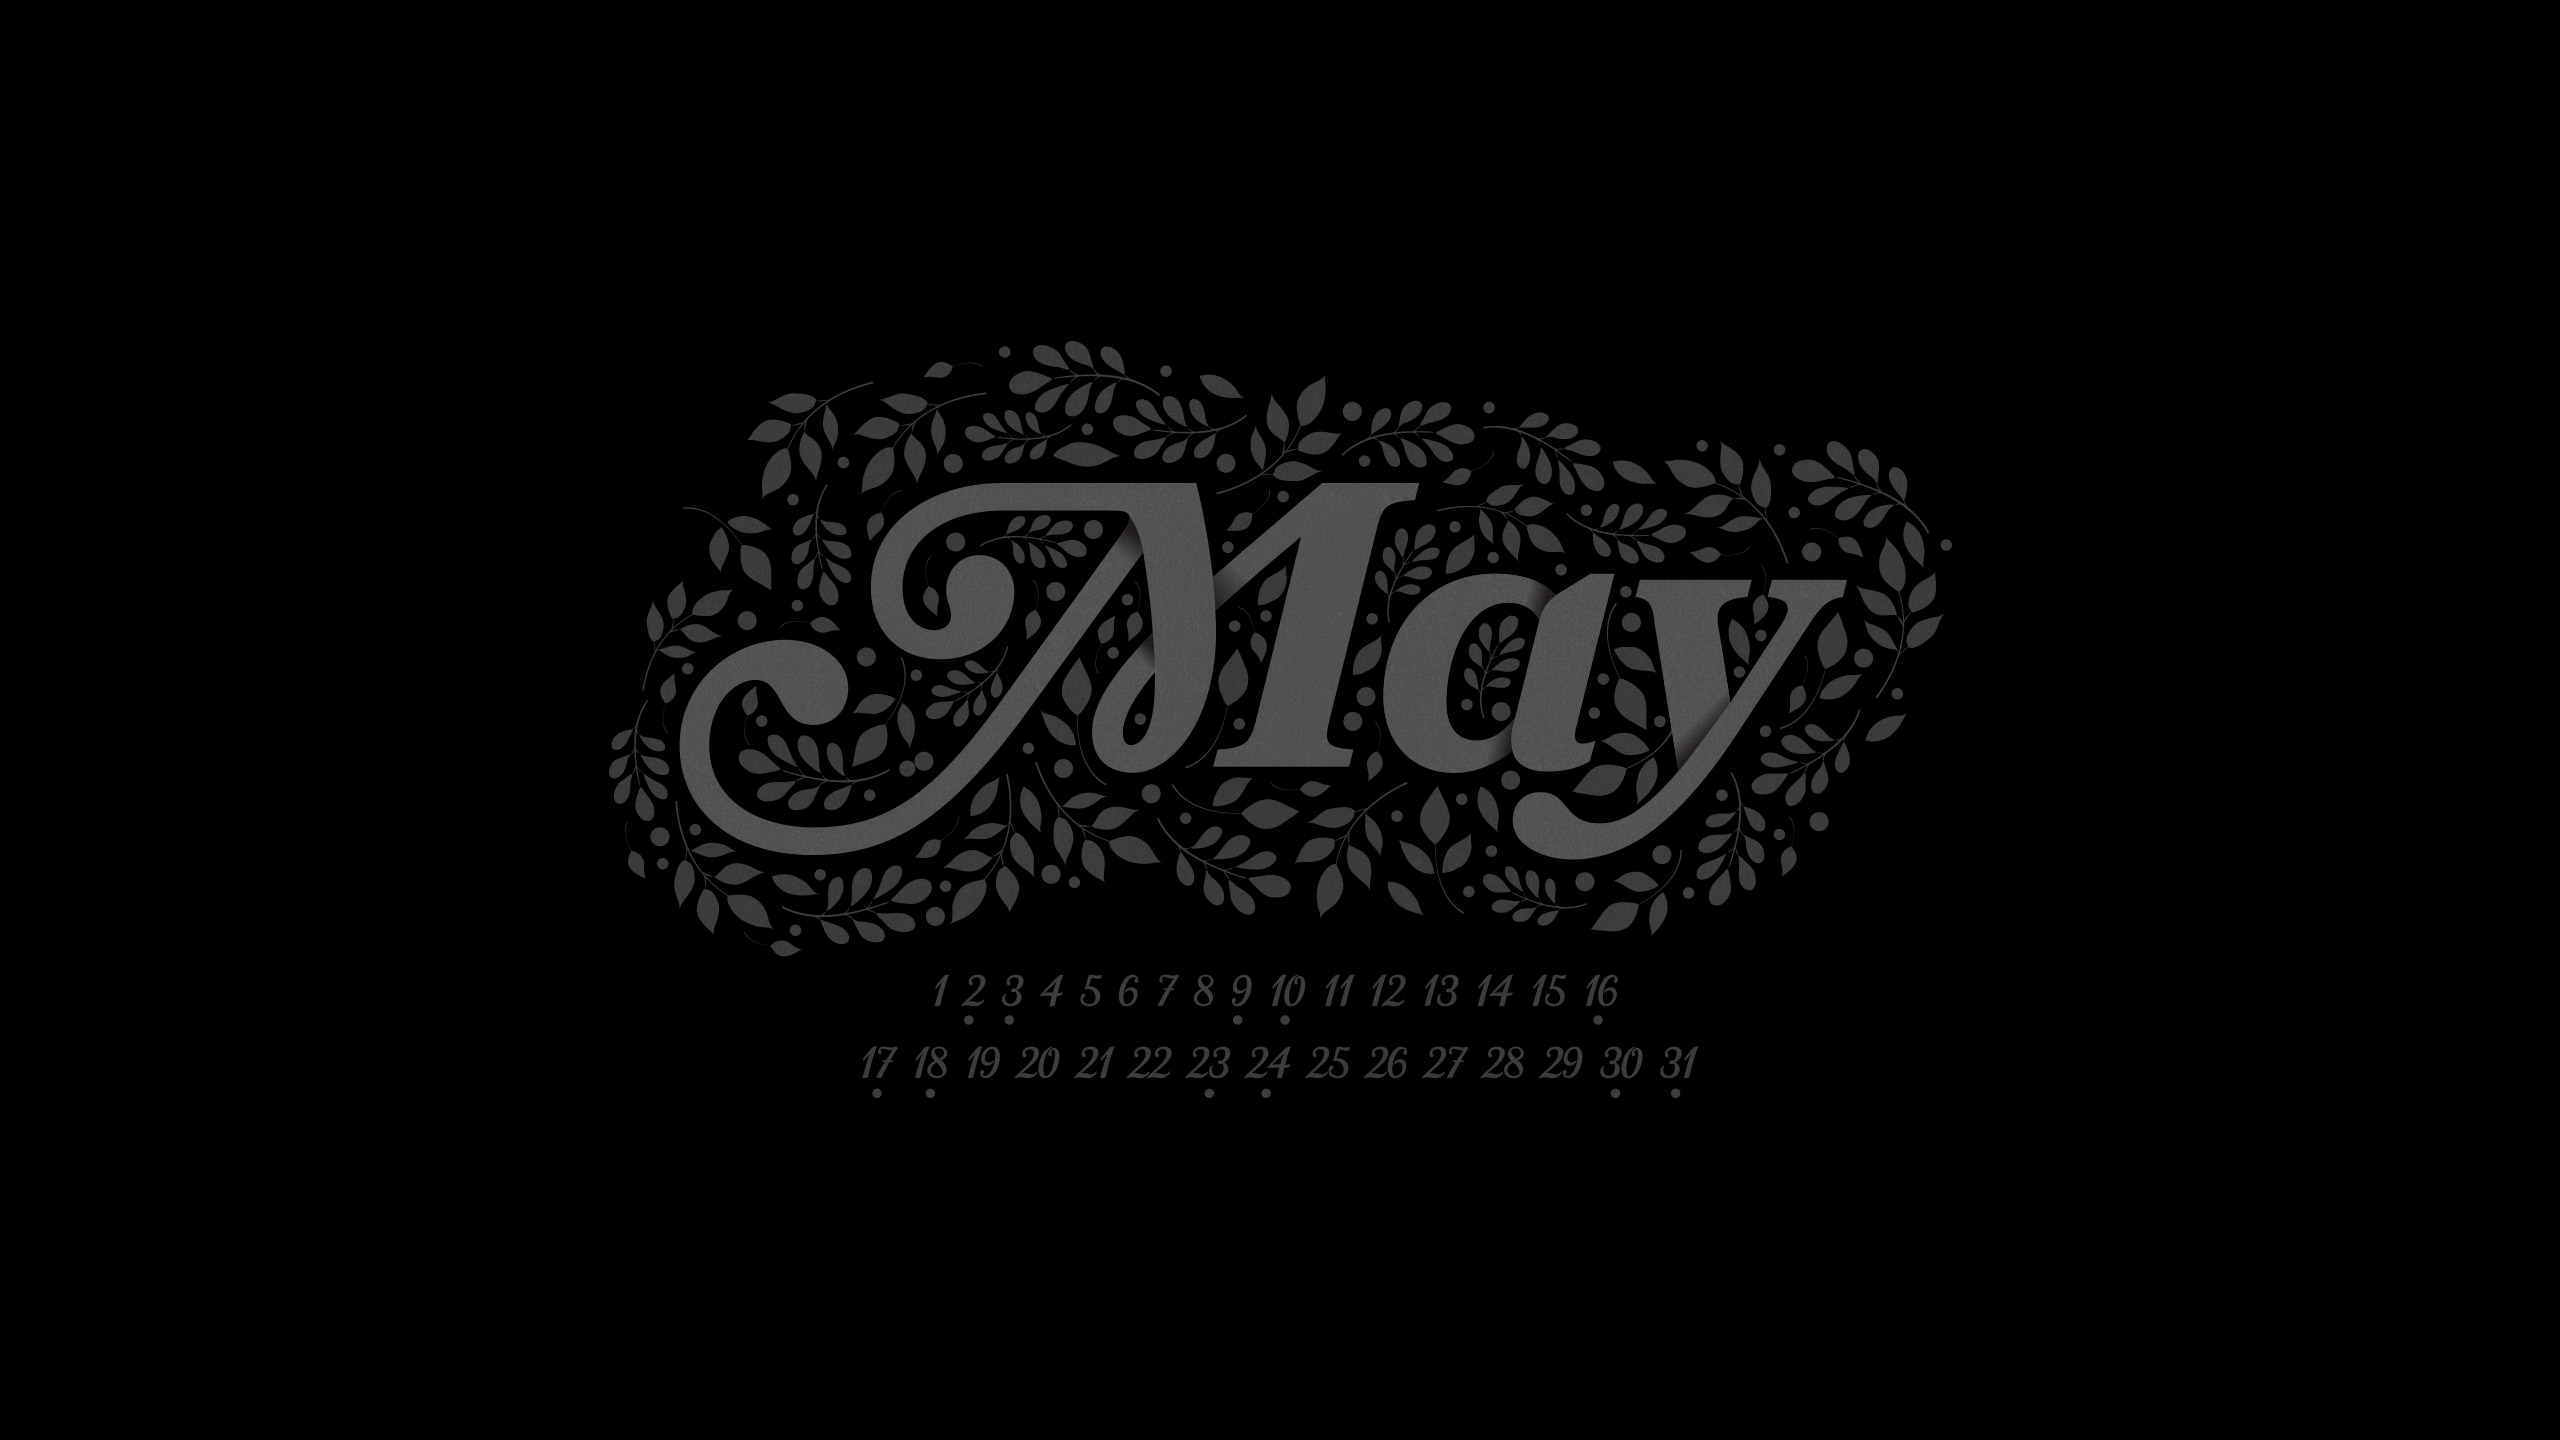 May 2015 Desktop Calendar Wallpaper Paper Leaf 2560x1440